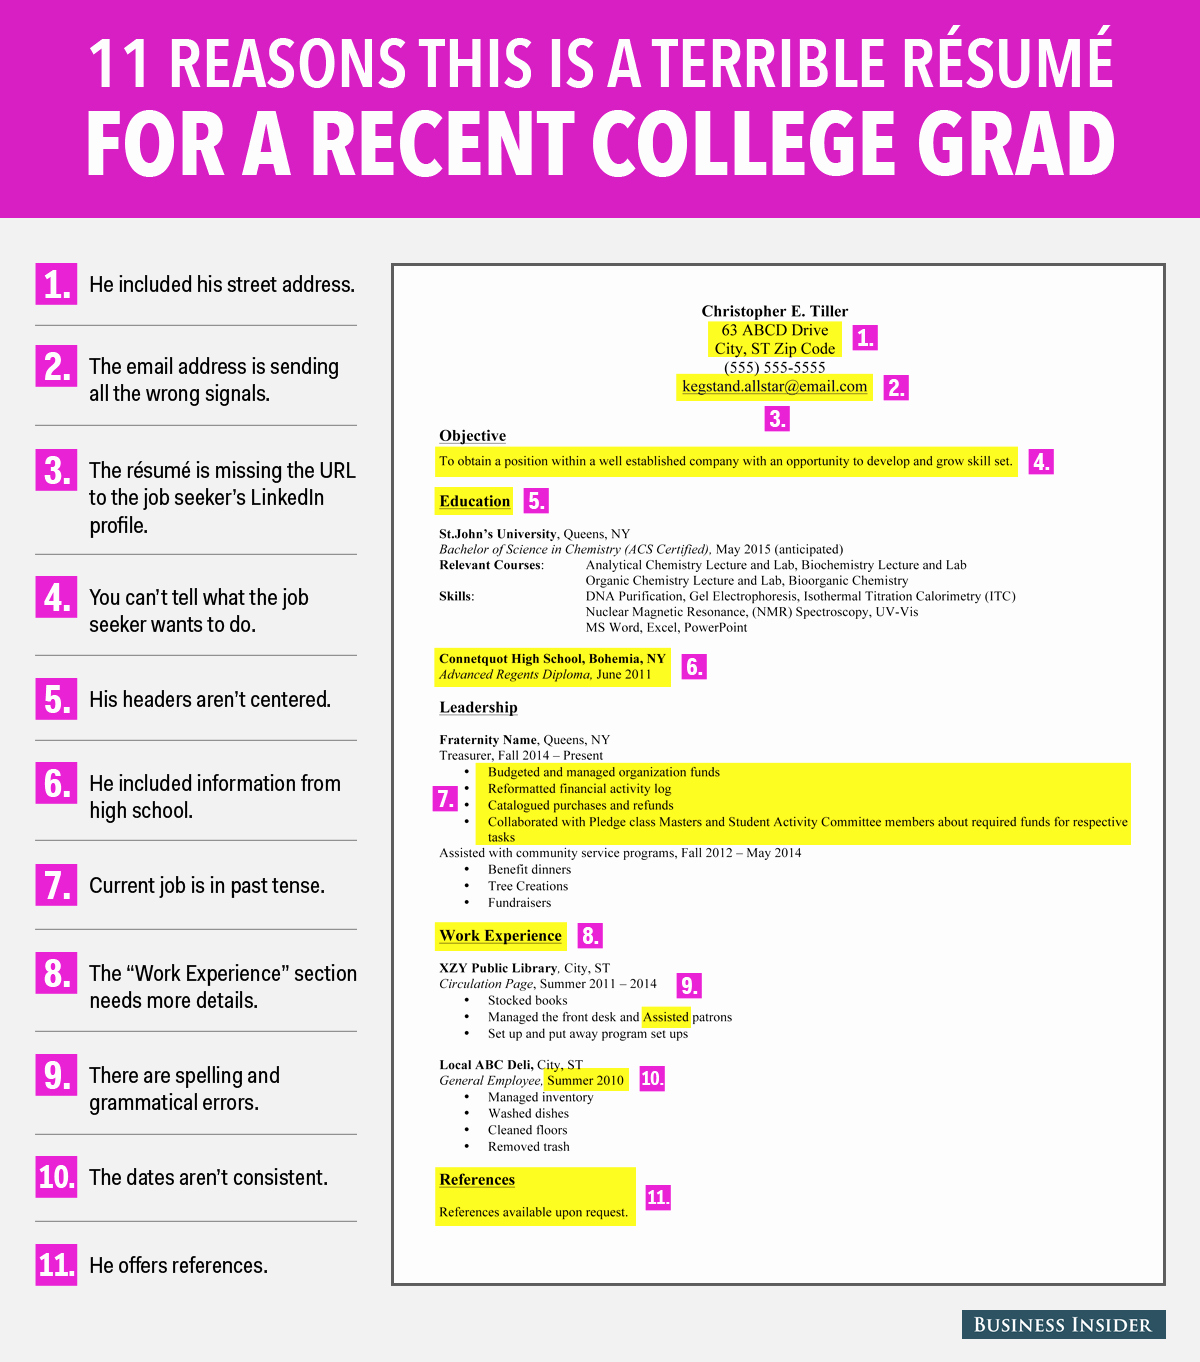 Resumes for New College Graduates Unique Terrible Resume for A Recent College Grad Business Insider